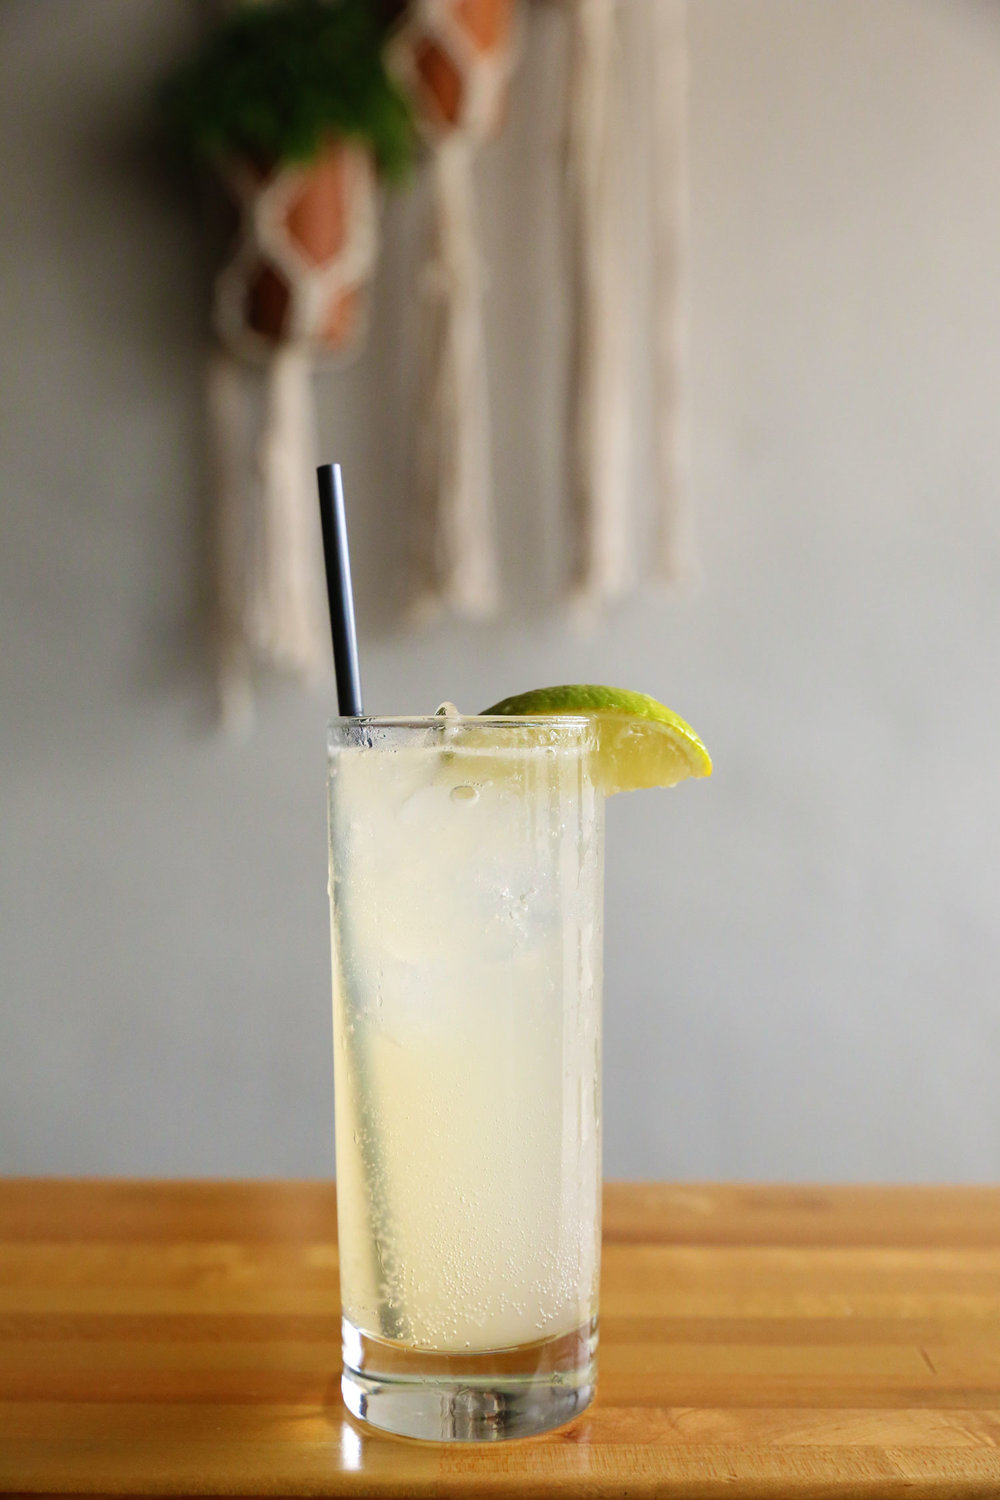 Paloma - Tequila, lime salt, grapefruit soda. Light, refreshing, just a hint of sweetness.